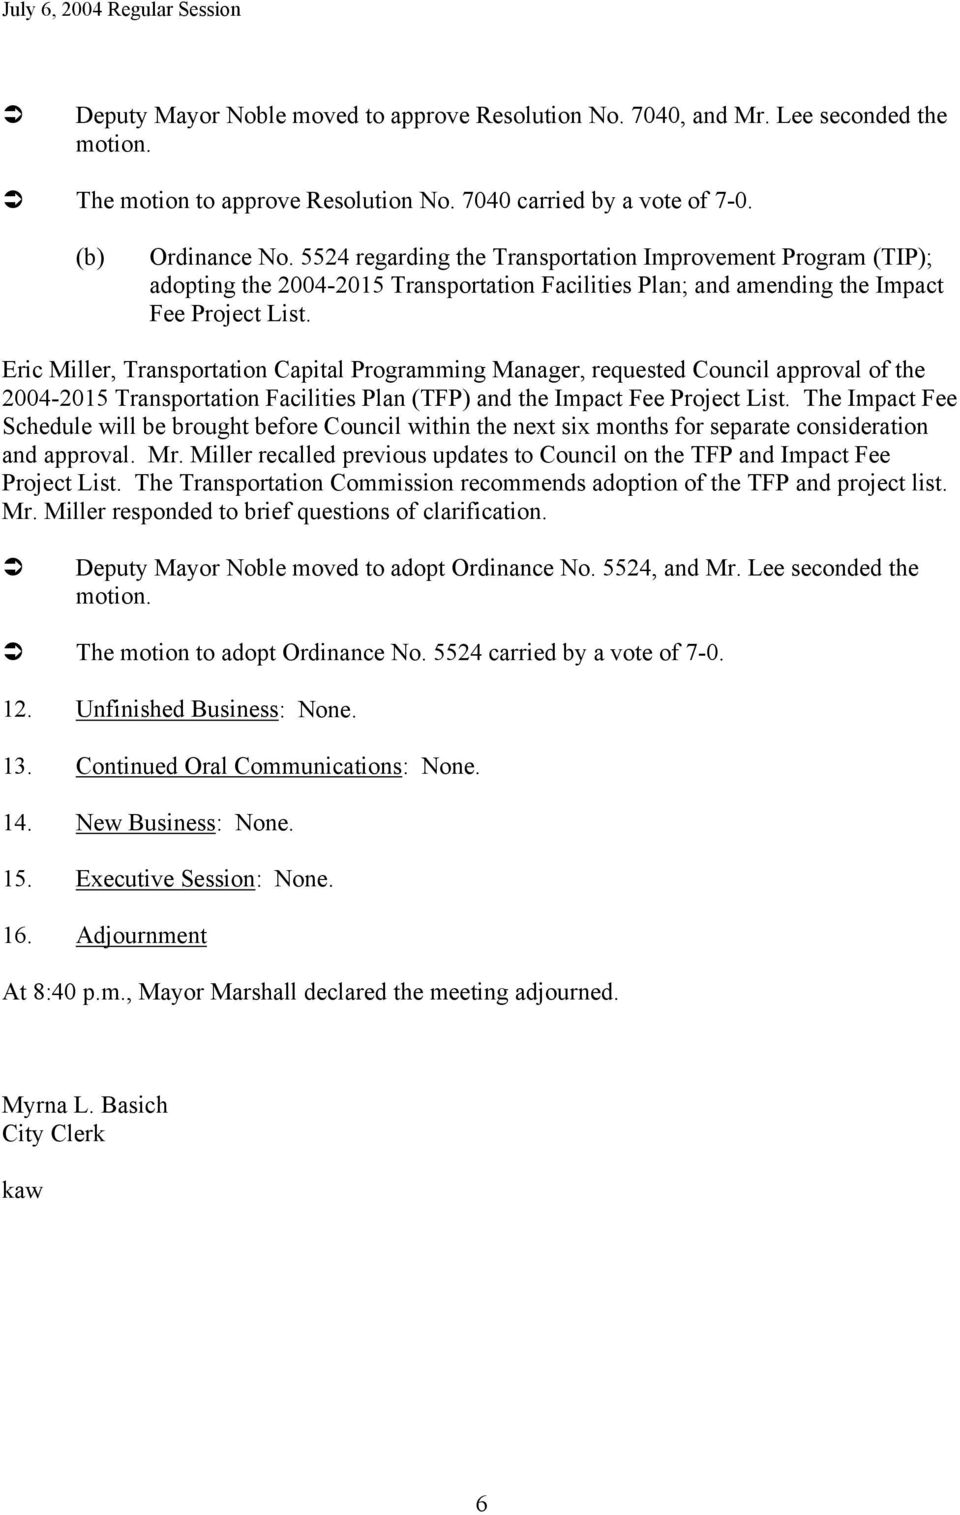 Eric Miller, Transportation Capital Programming Manager, requested Council approval of the 2004-2015 Transportation Facilities Plan (TFP) and the Impact Fee Project List.